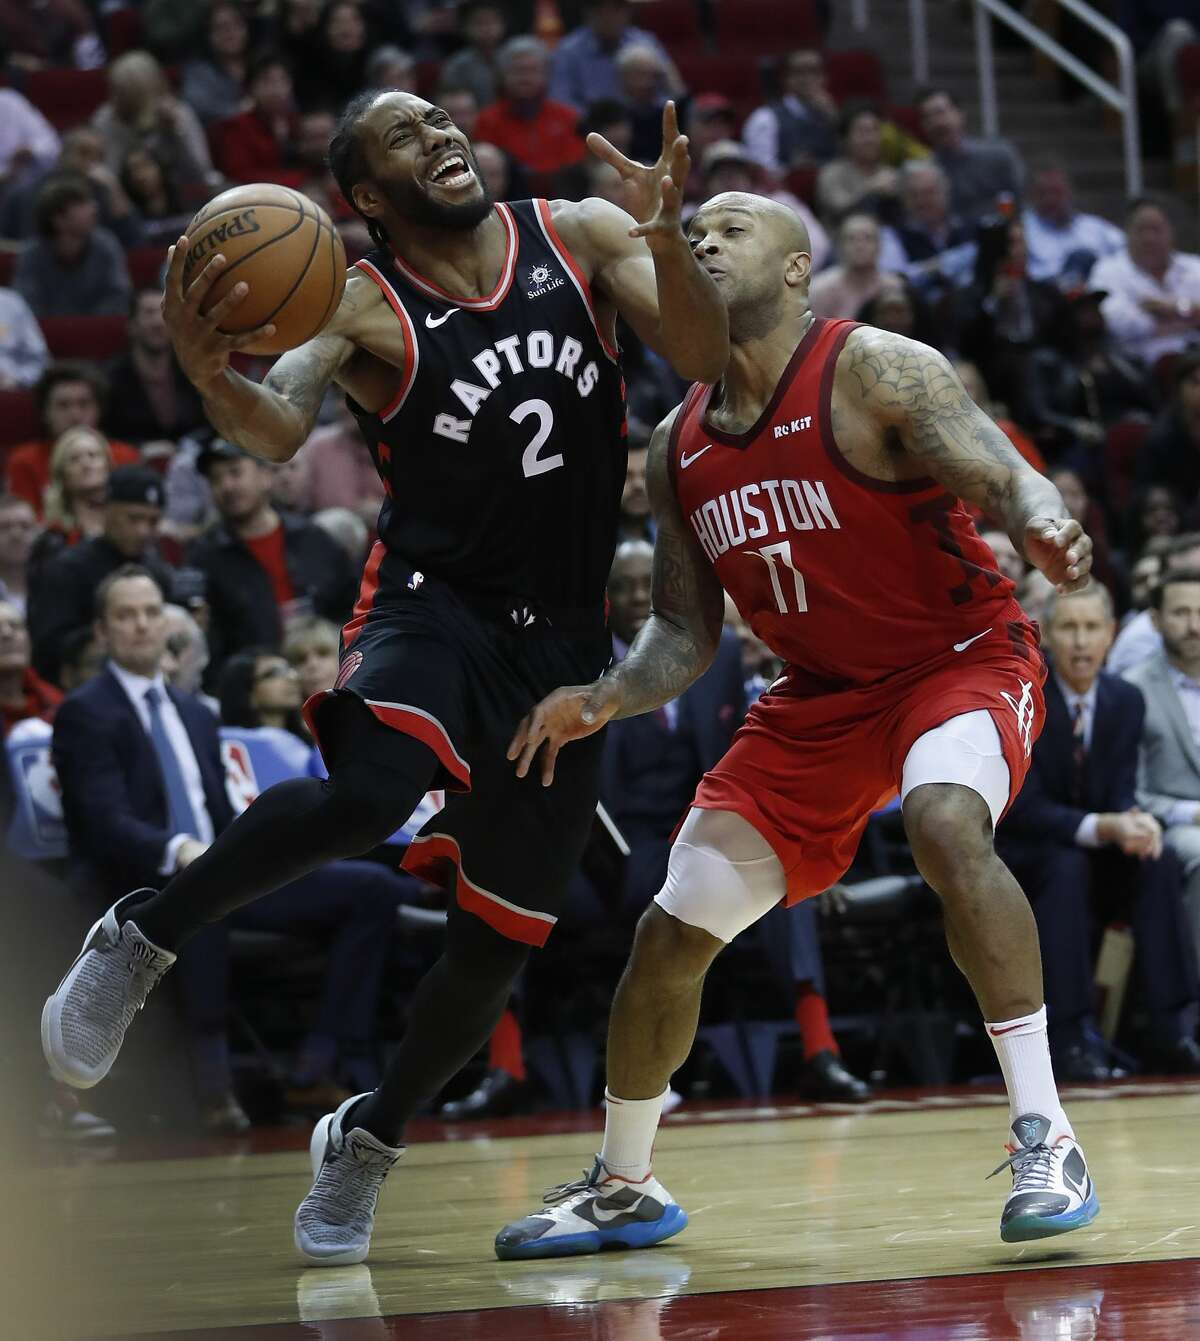 Toronto Raptors forward Kawhi Leonard (2) tries to beat out Houston Rockets forward PJ Tucker (17) during the second half of an NBA basketball game at Toyota Center, Friday, Jan. 25, 2019, in Houston.